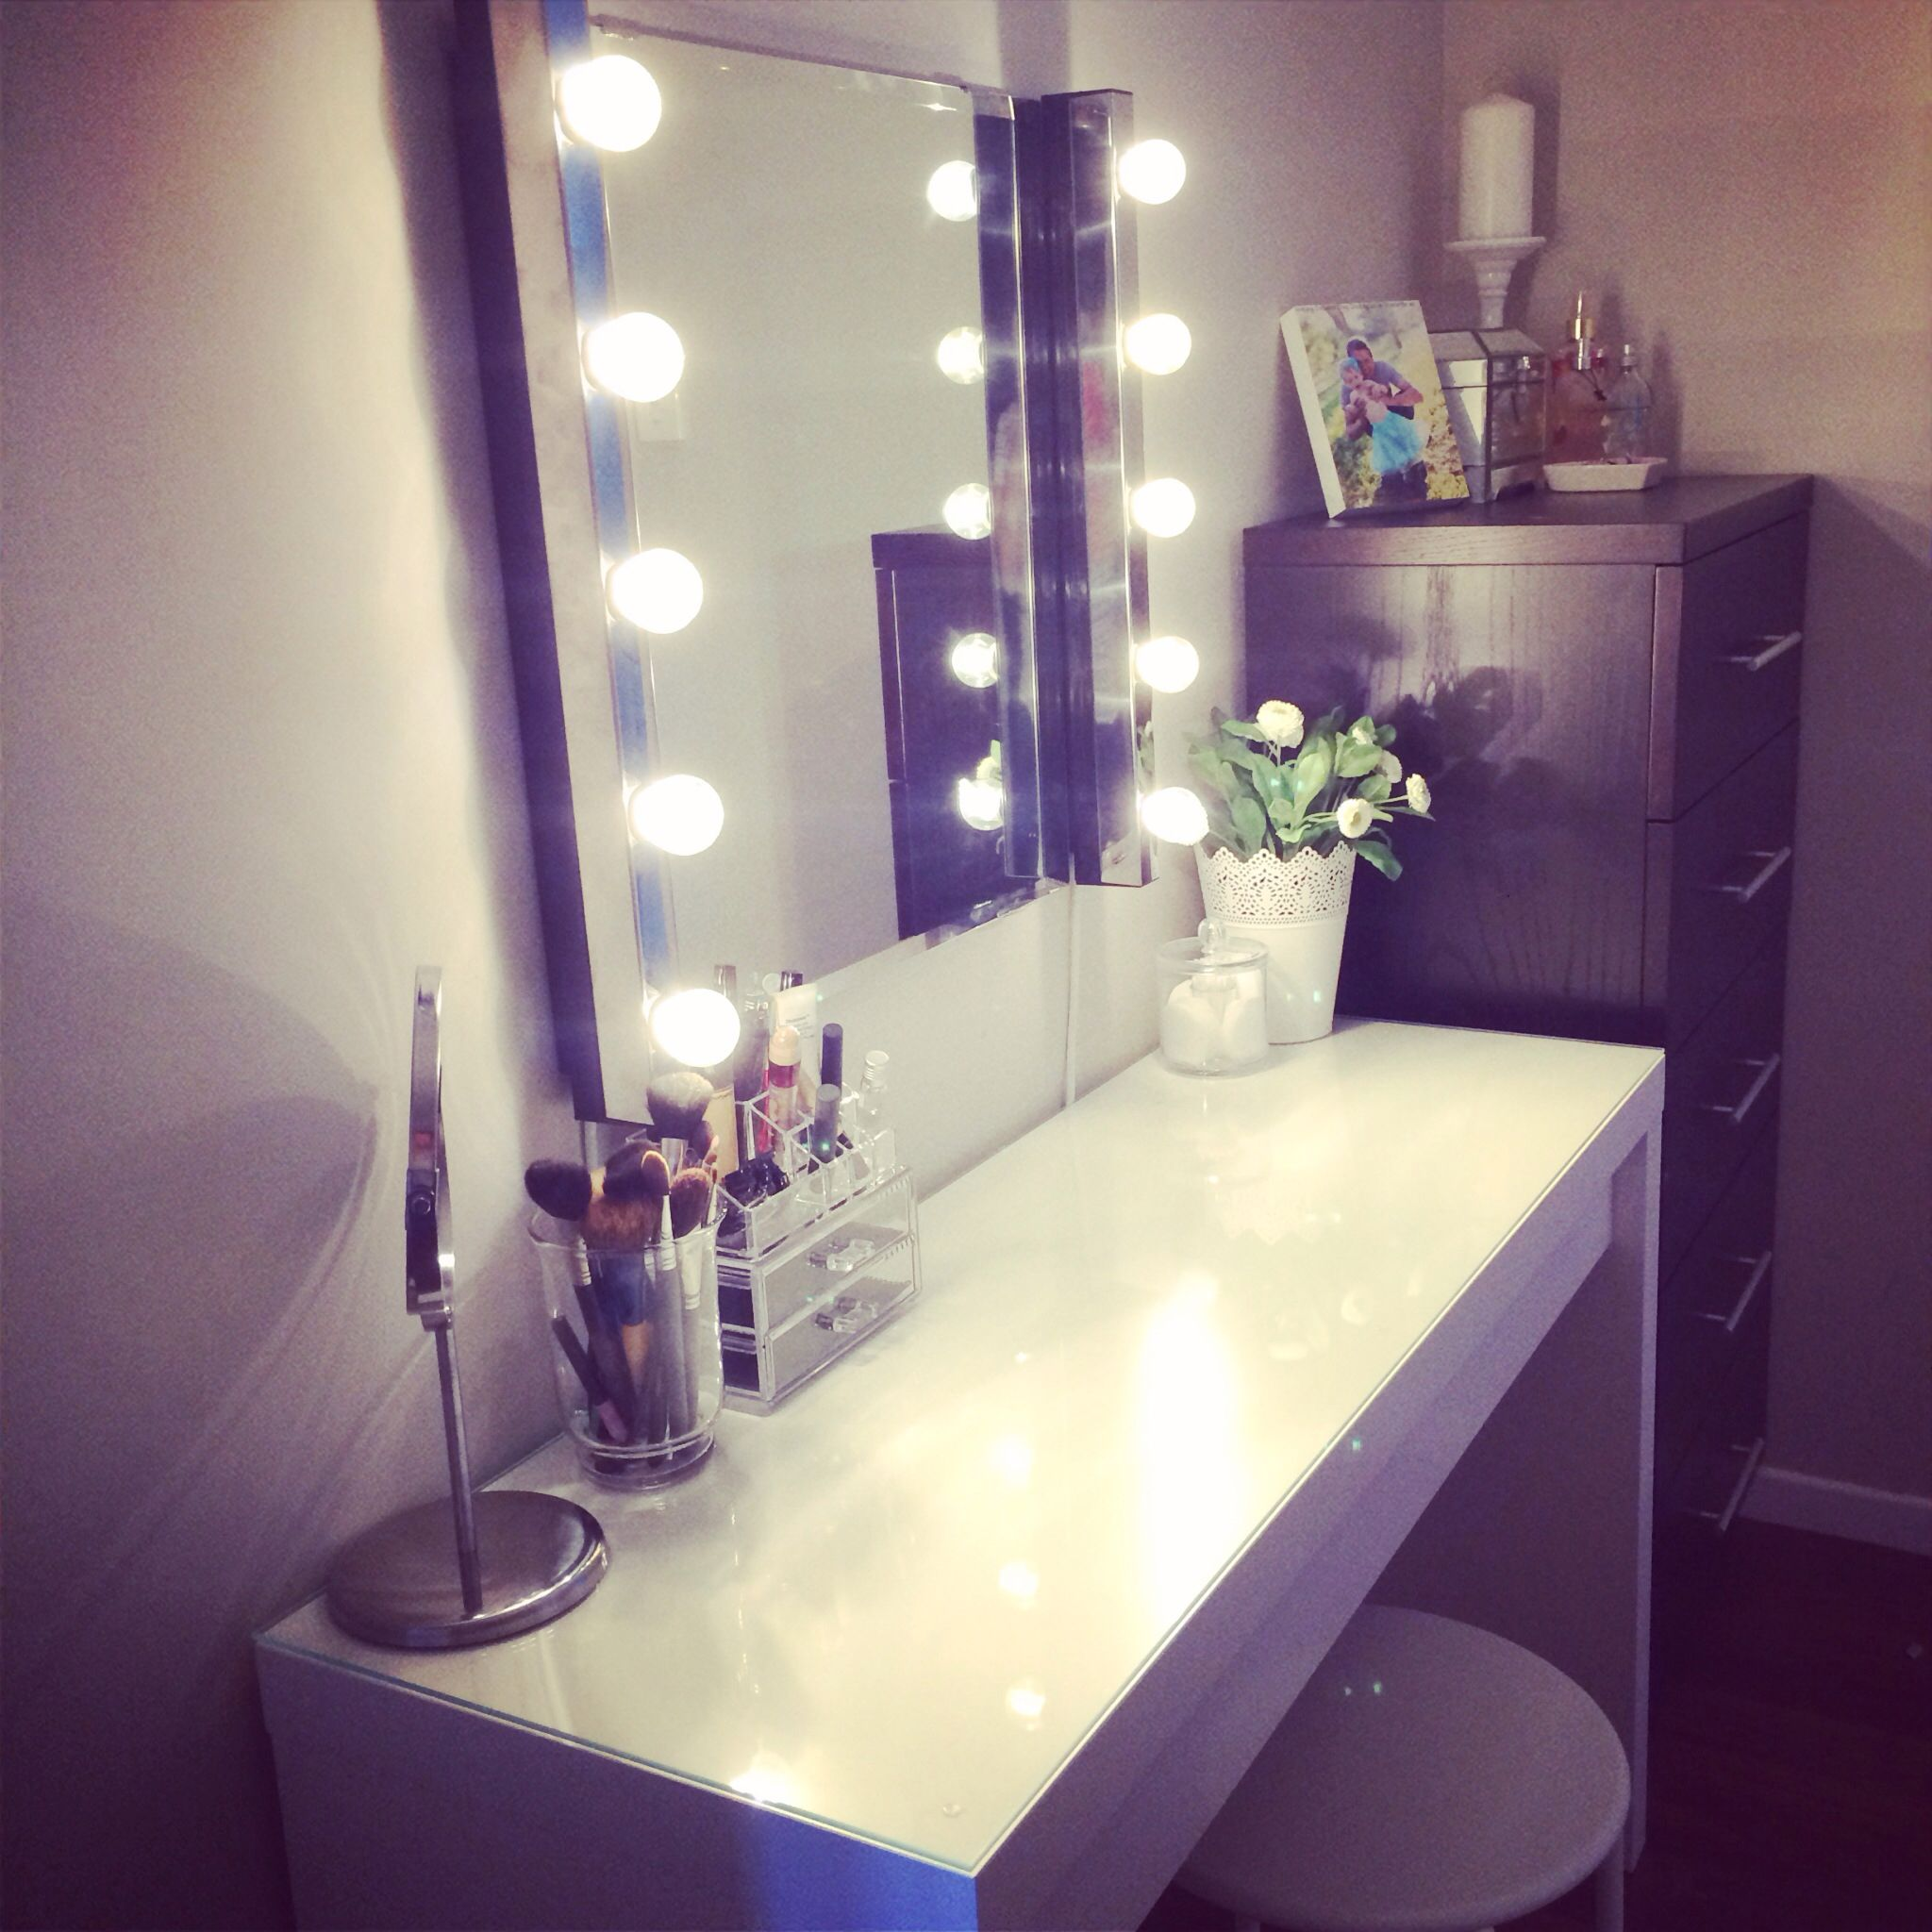 Dressing table mirrors ikea - Ikea Malm Vanity Mirror Lights And Stool Also From Ikea